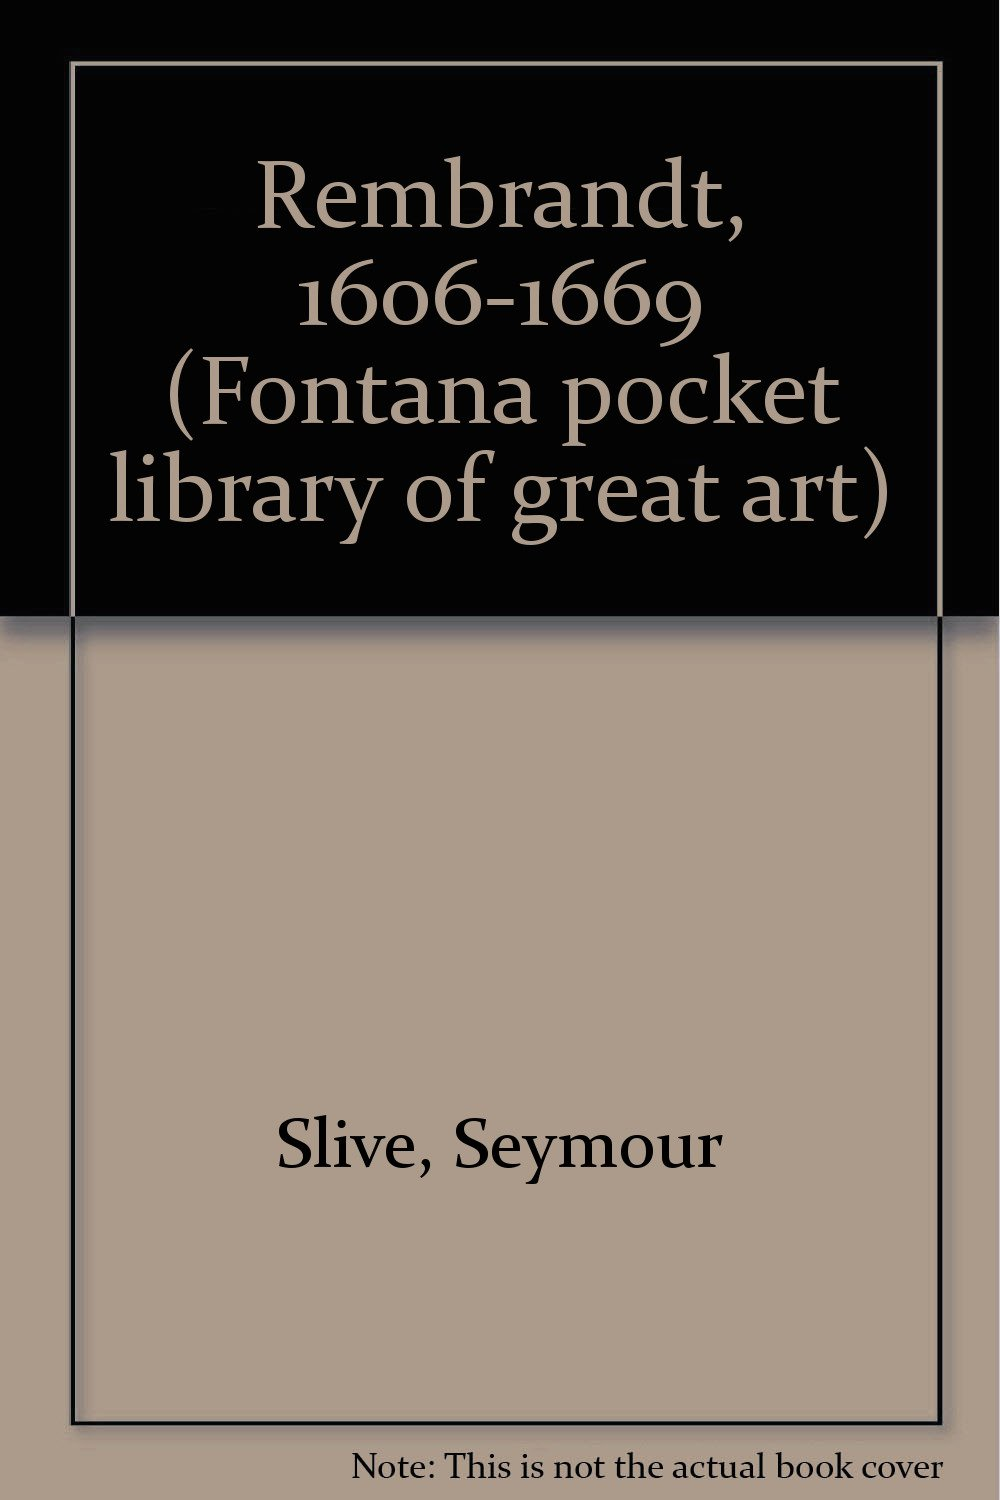 rembrandt1606 1669 fontana pocket library of great art